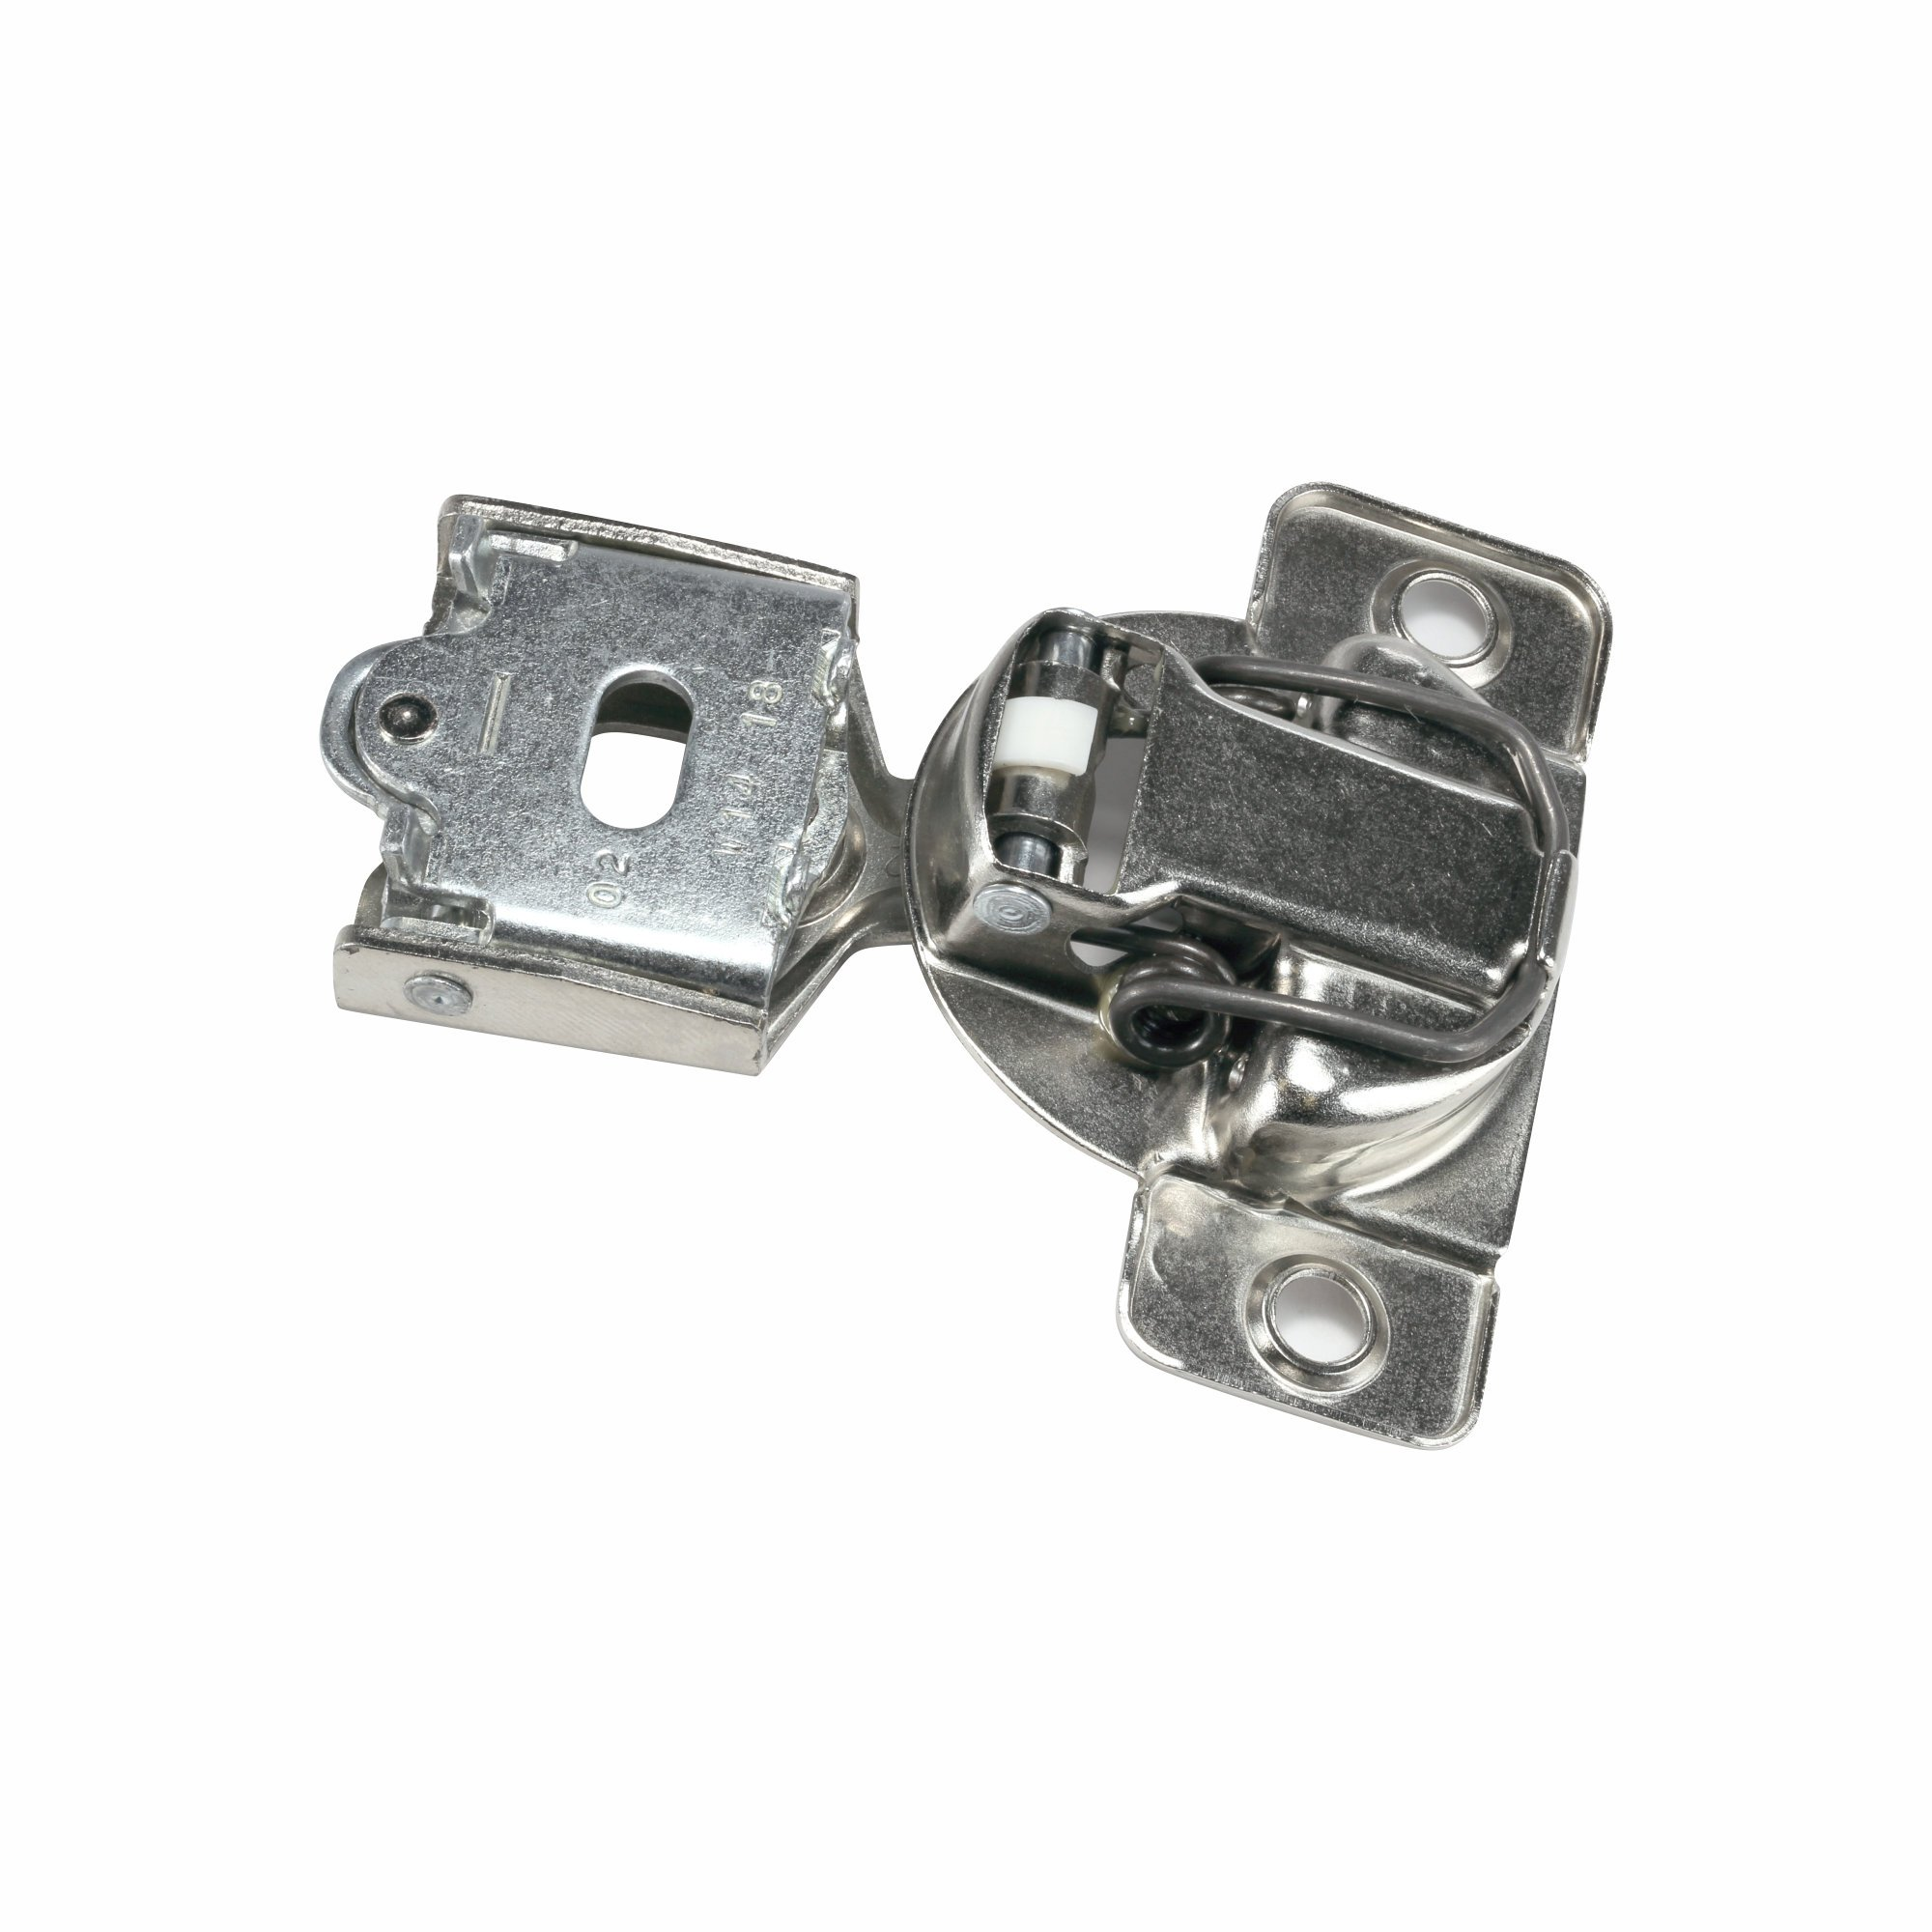 Grass TEC 864 85 Degree Hinge Angle Reduction Clip 80125-42 25 Pack